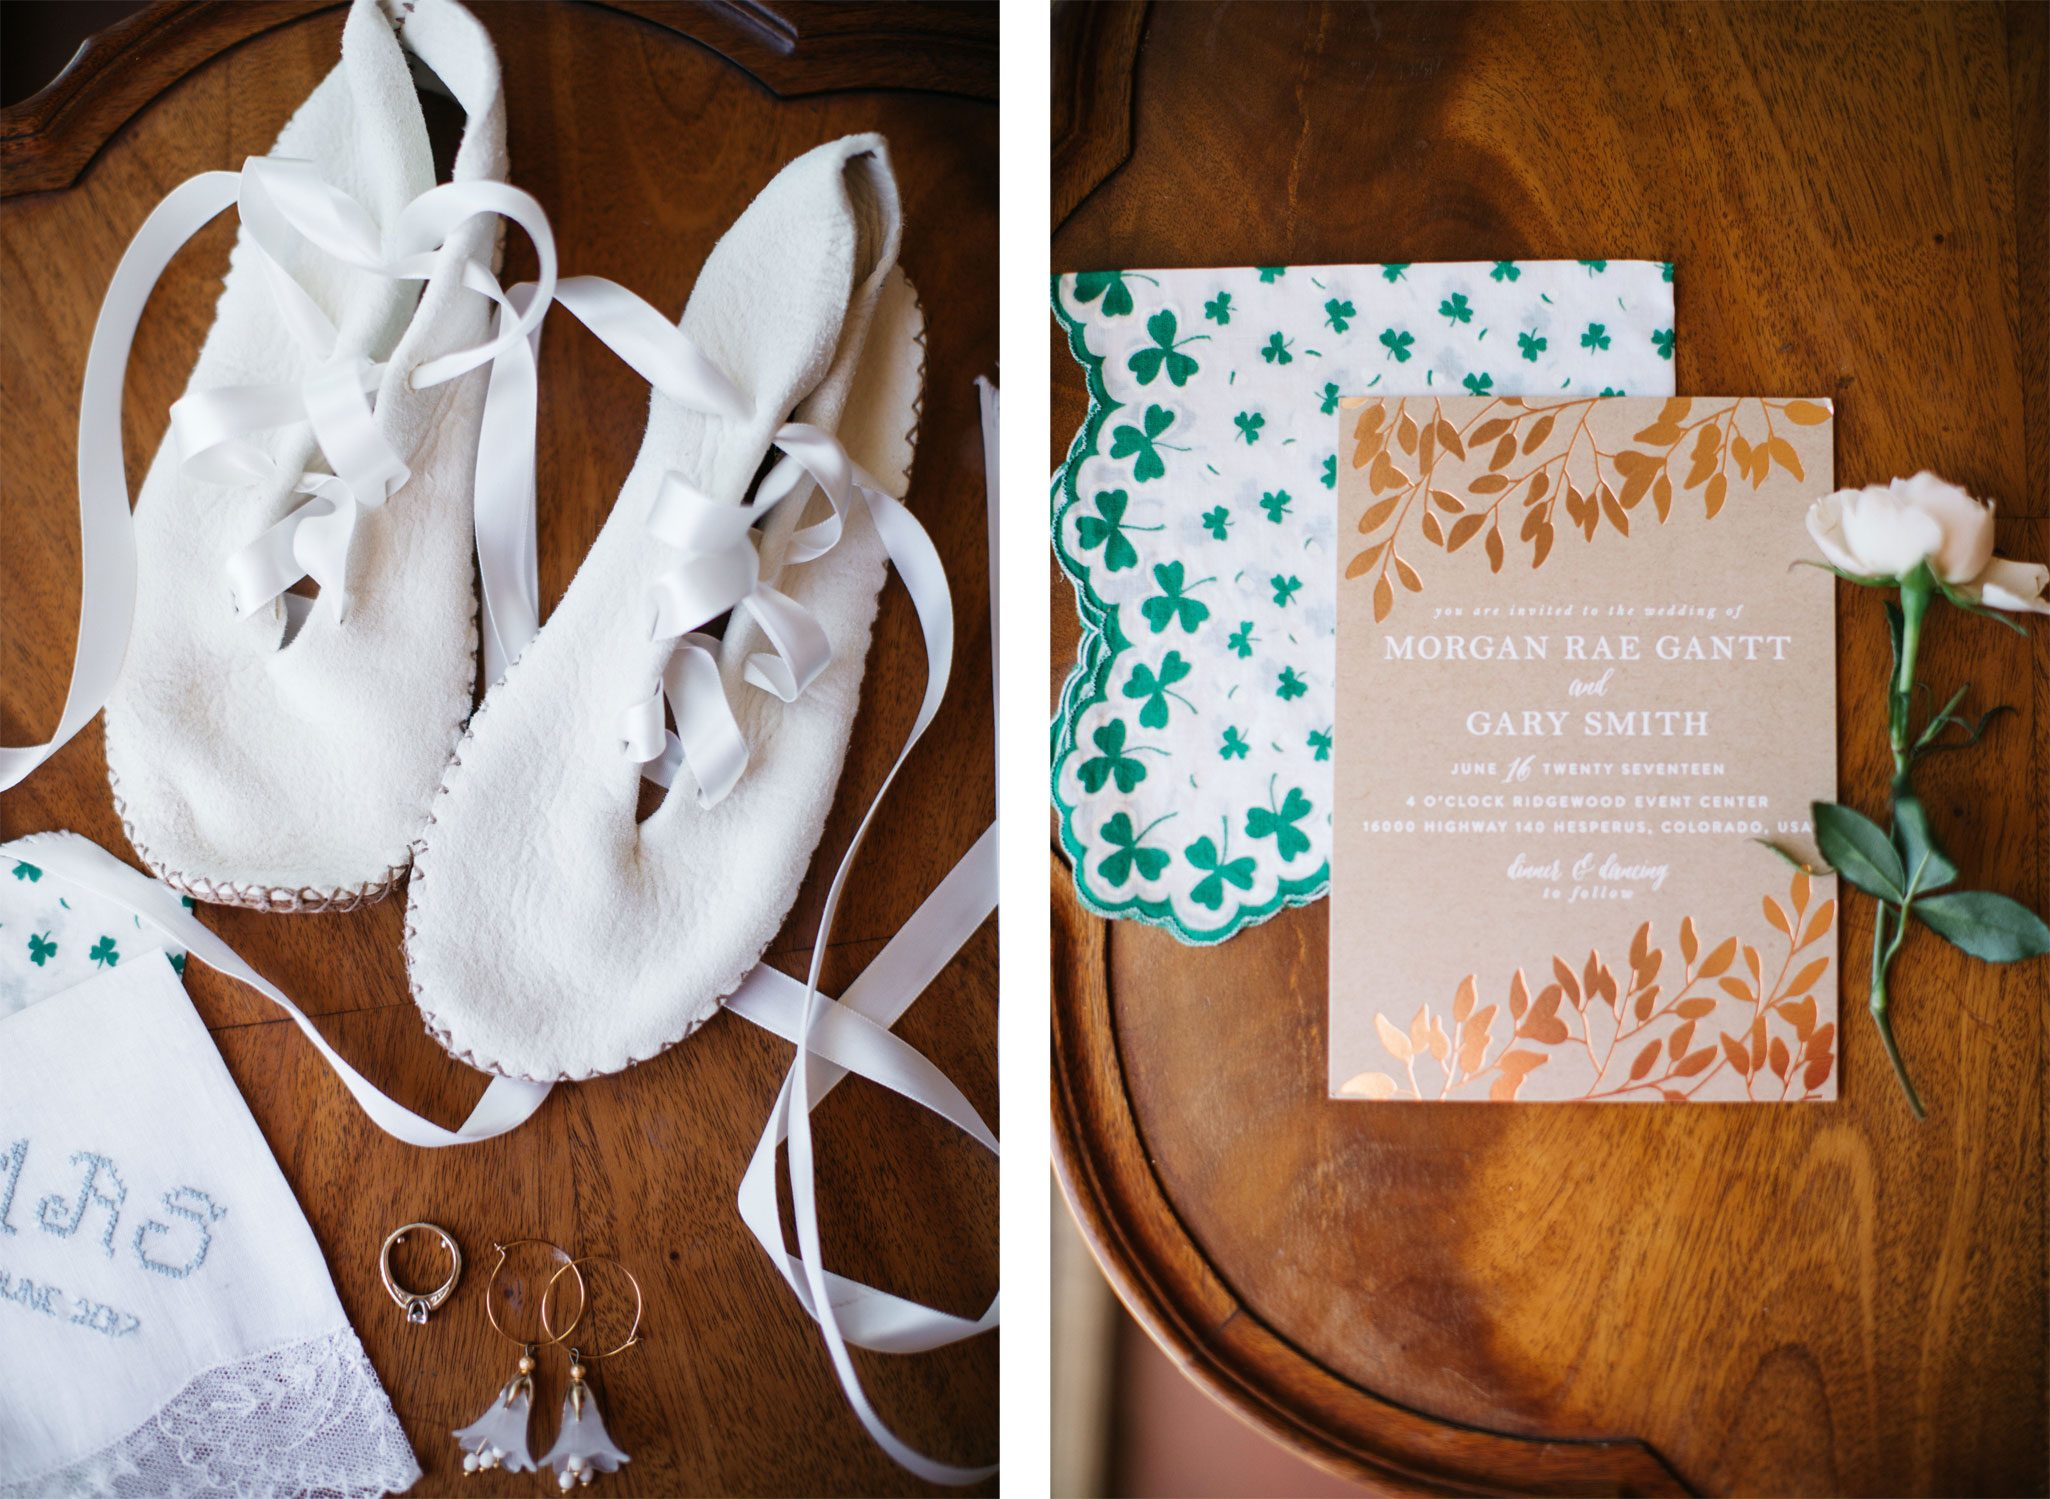 Custom shoes and invitations from a mountain wedding in Durango, Colorado